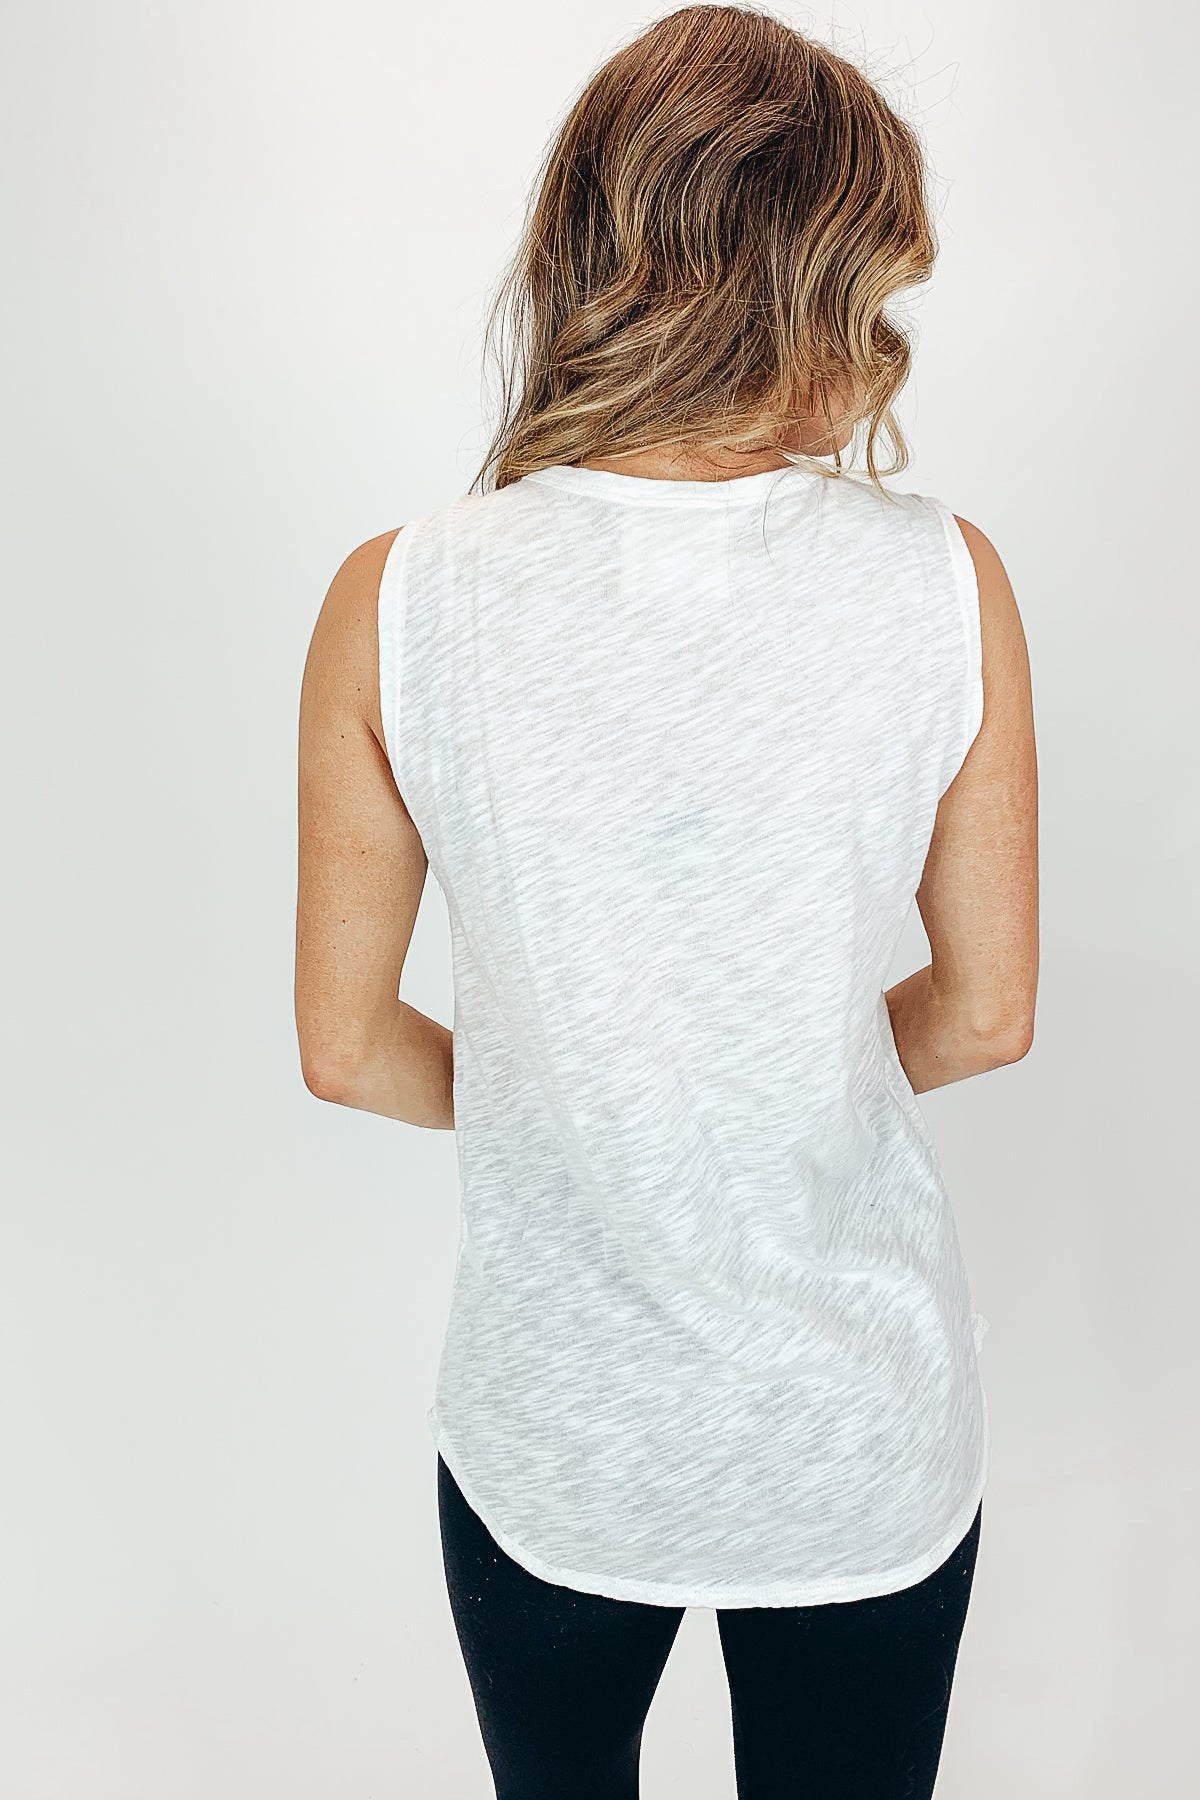 DISTRESSED LIGHTNING BOLT TANK IN WHITE